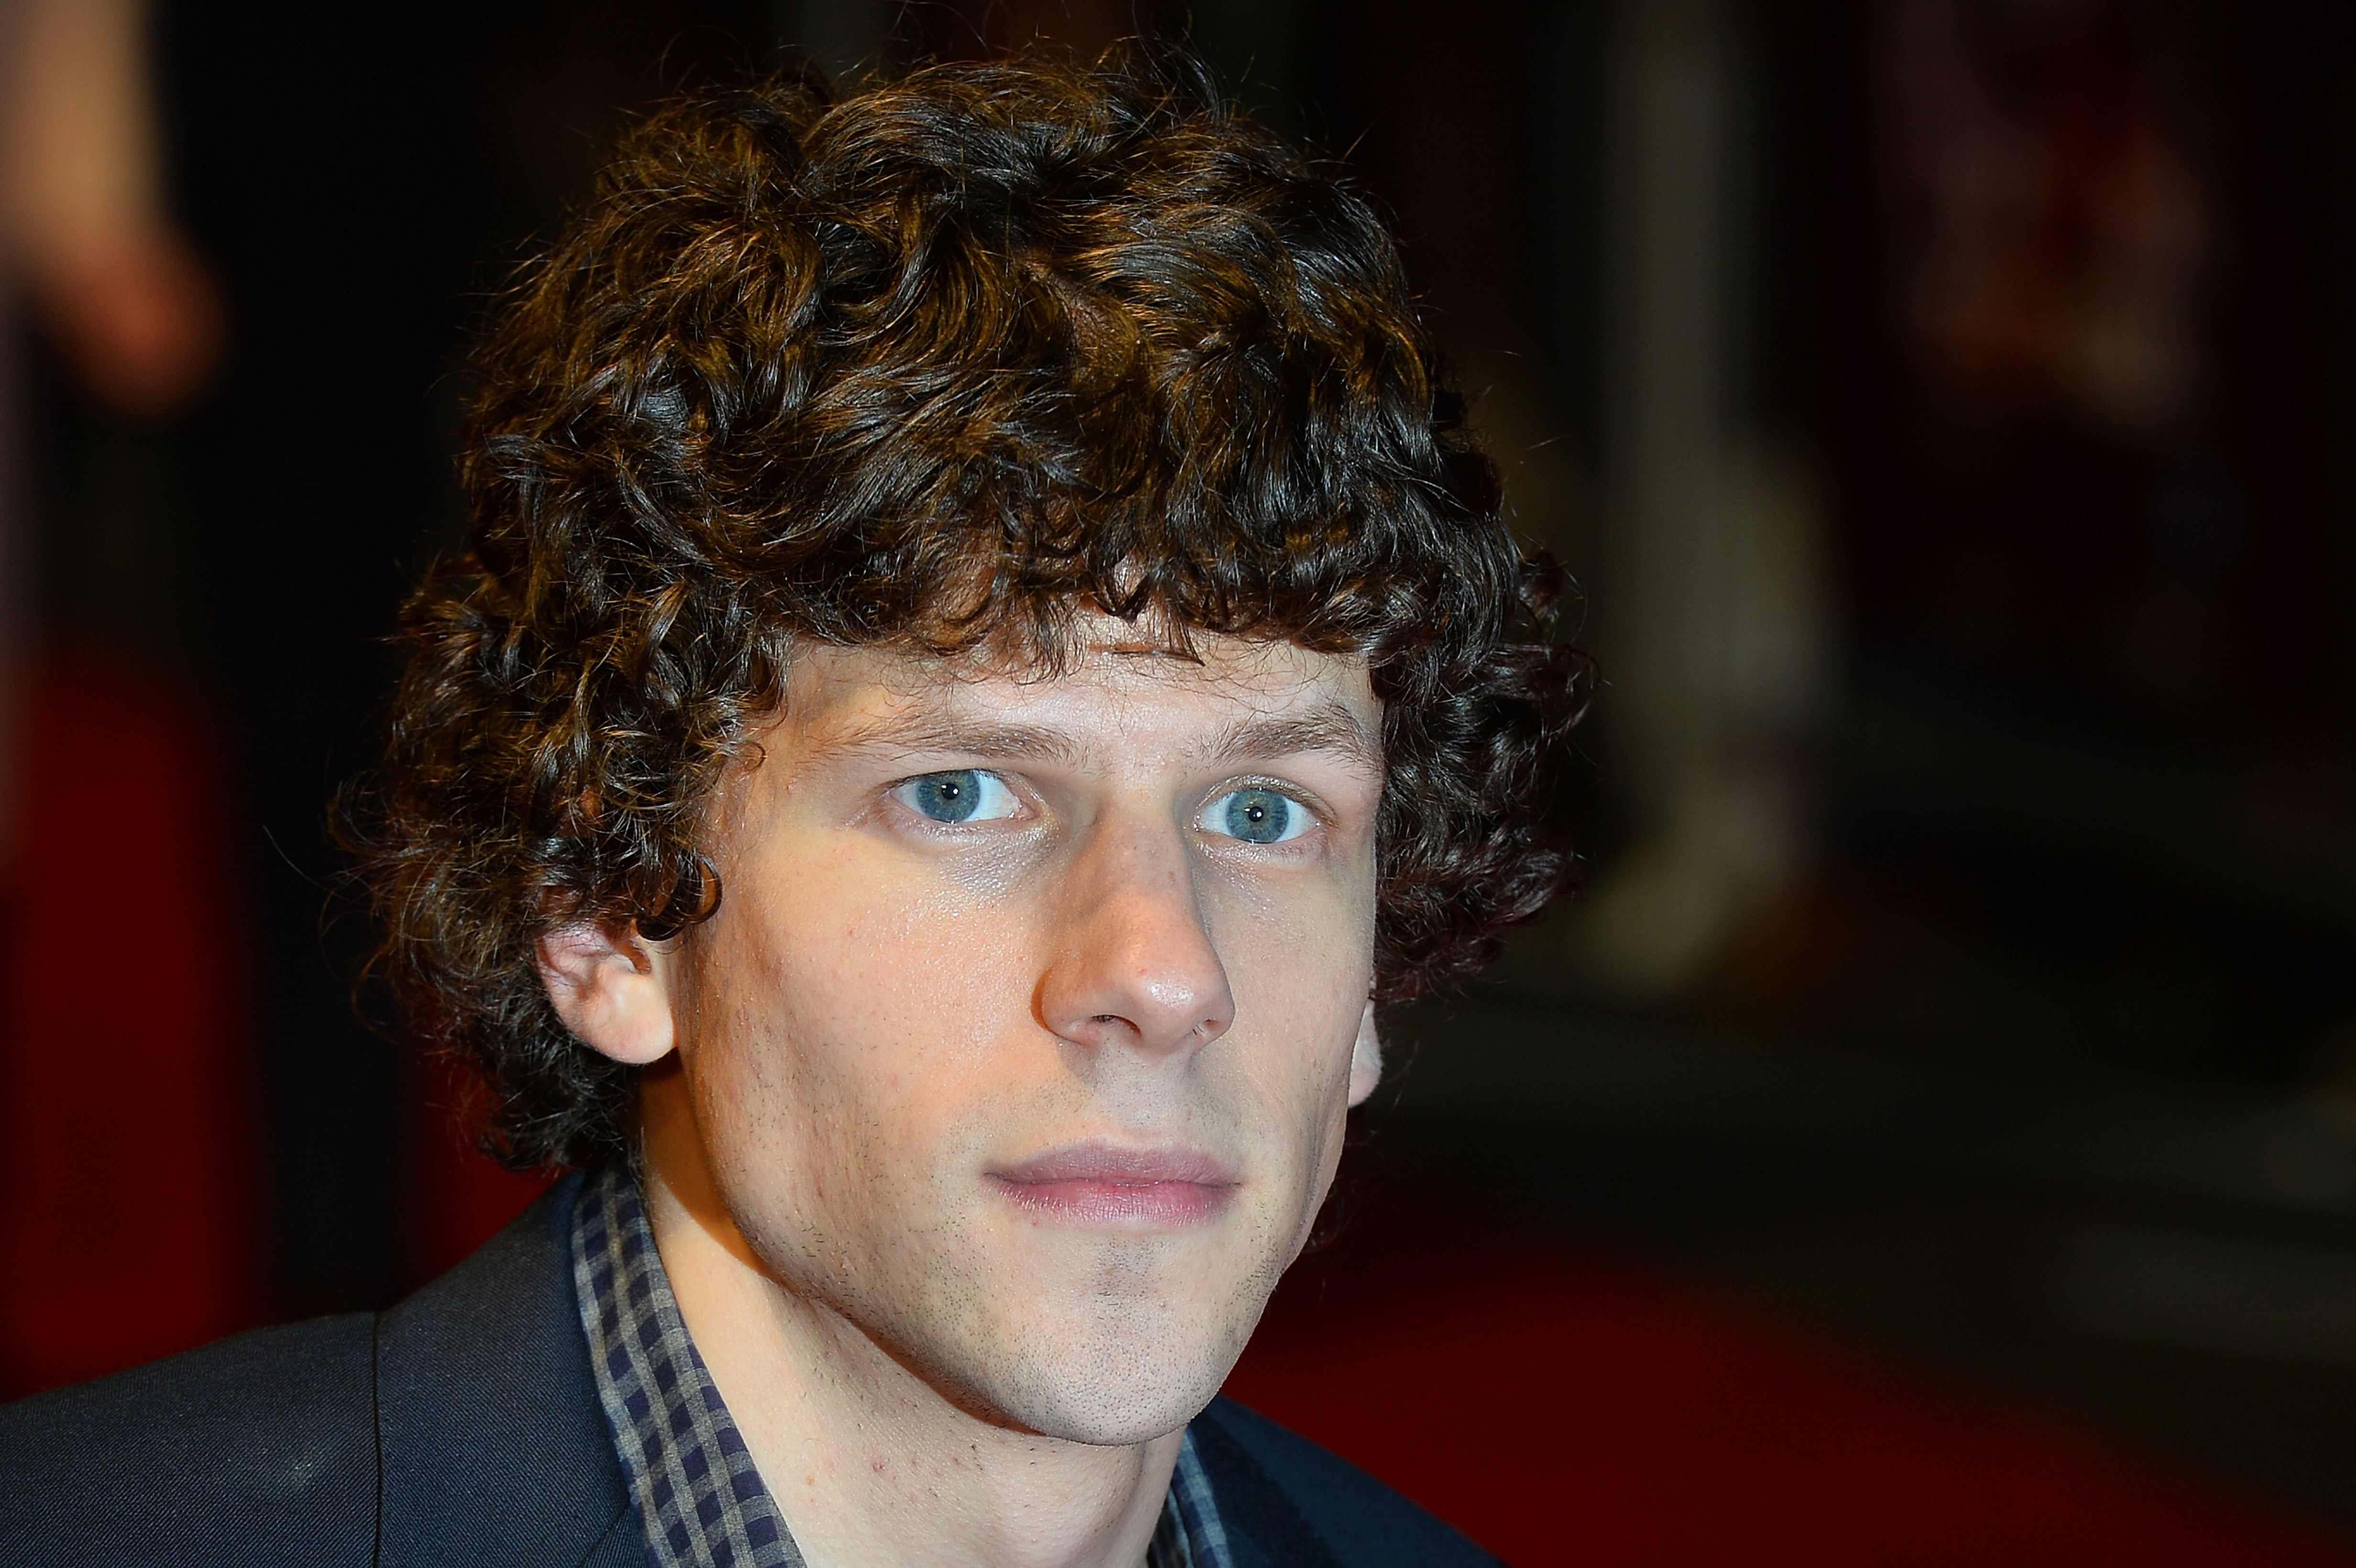 Jesse Eisenberg attends the European premiere of his film 'The Double' during the London Film Festival in central London on October 12, 2013.